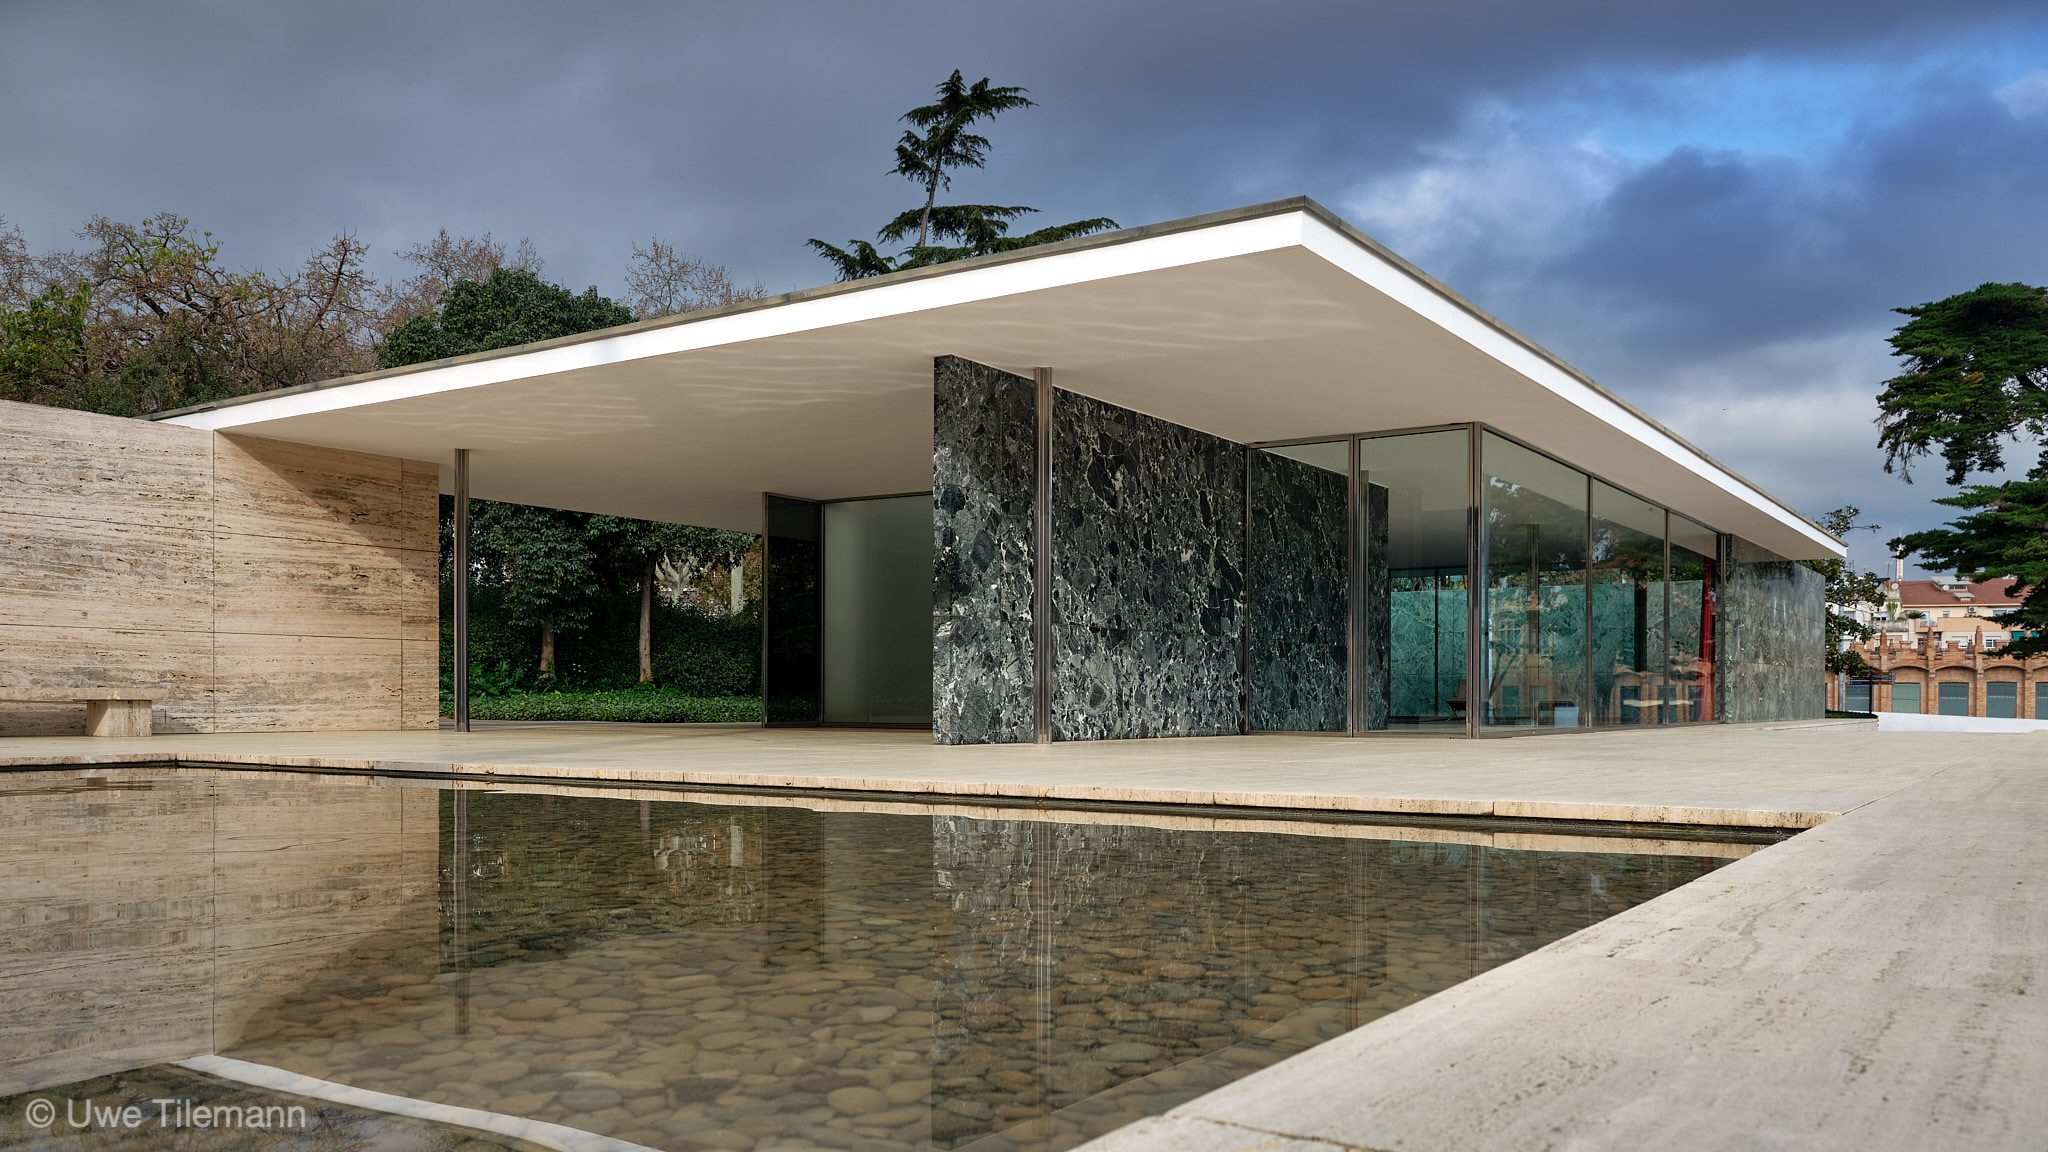 Barcelona Pavilion in March 2019